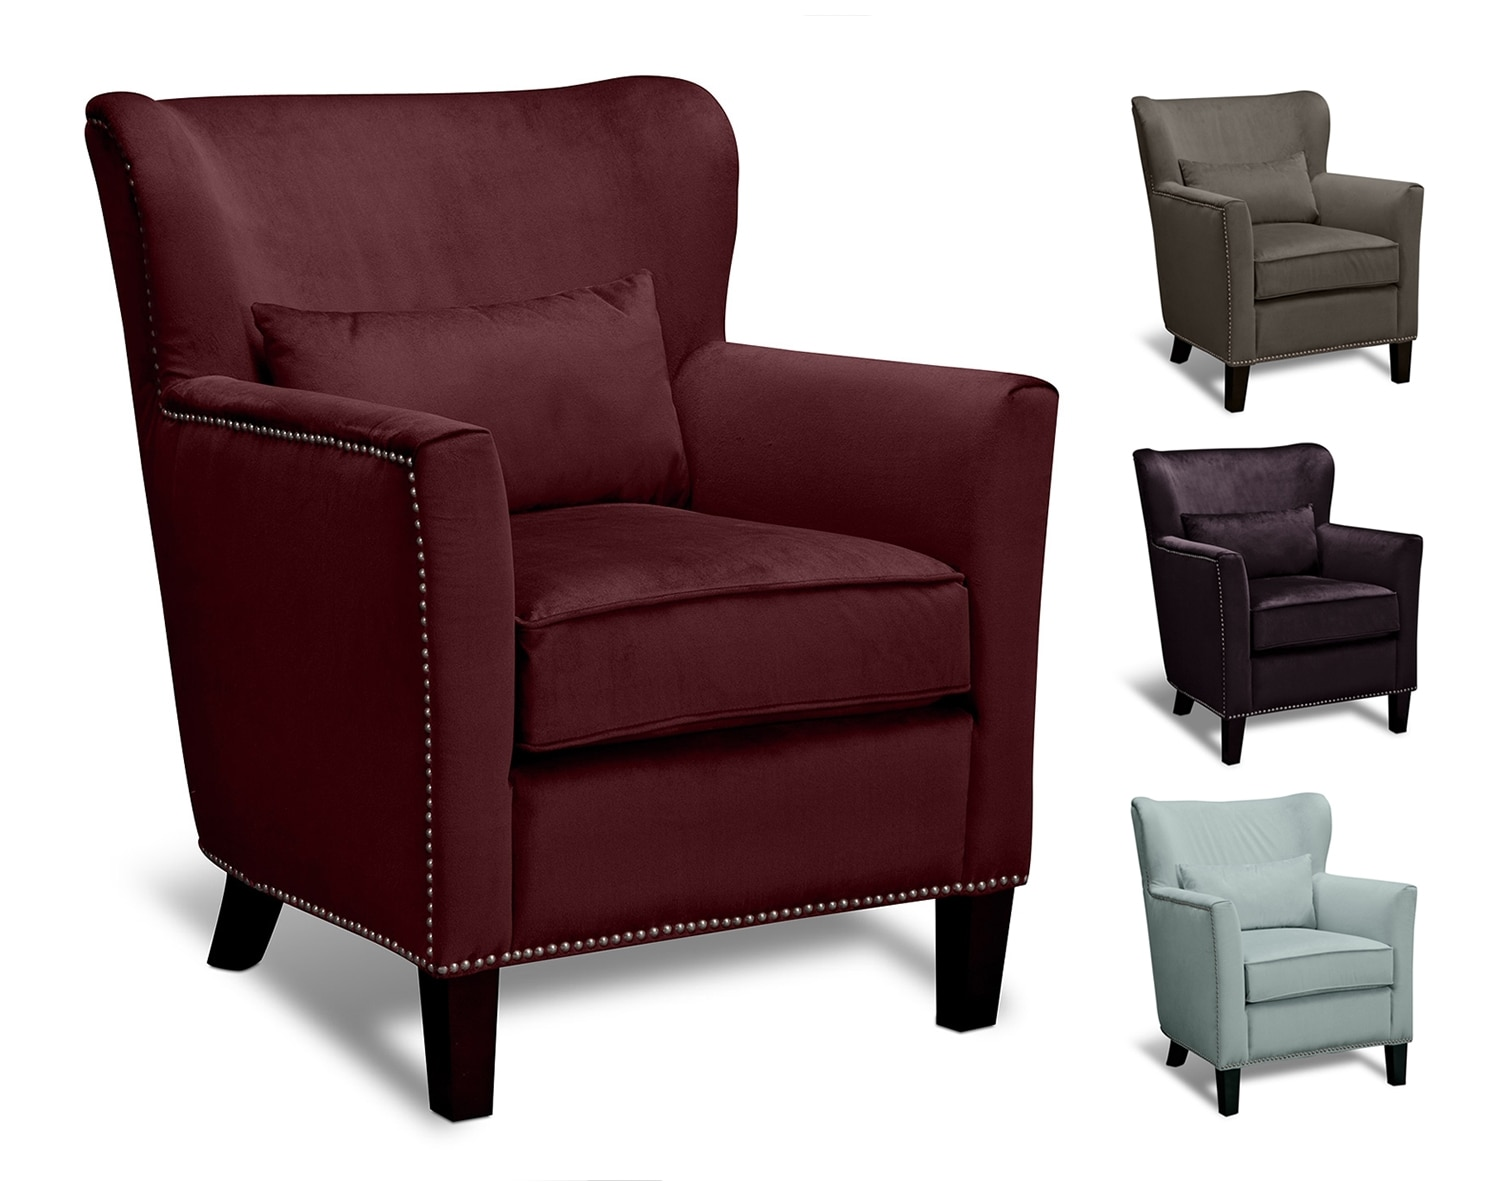 Living Room Furniture - The Kinsey Collection - Accent Chair